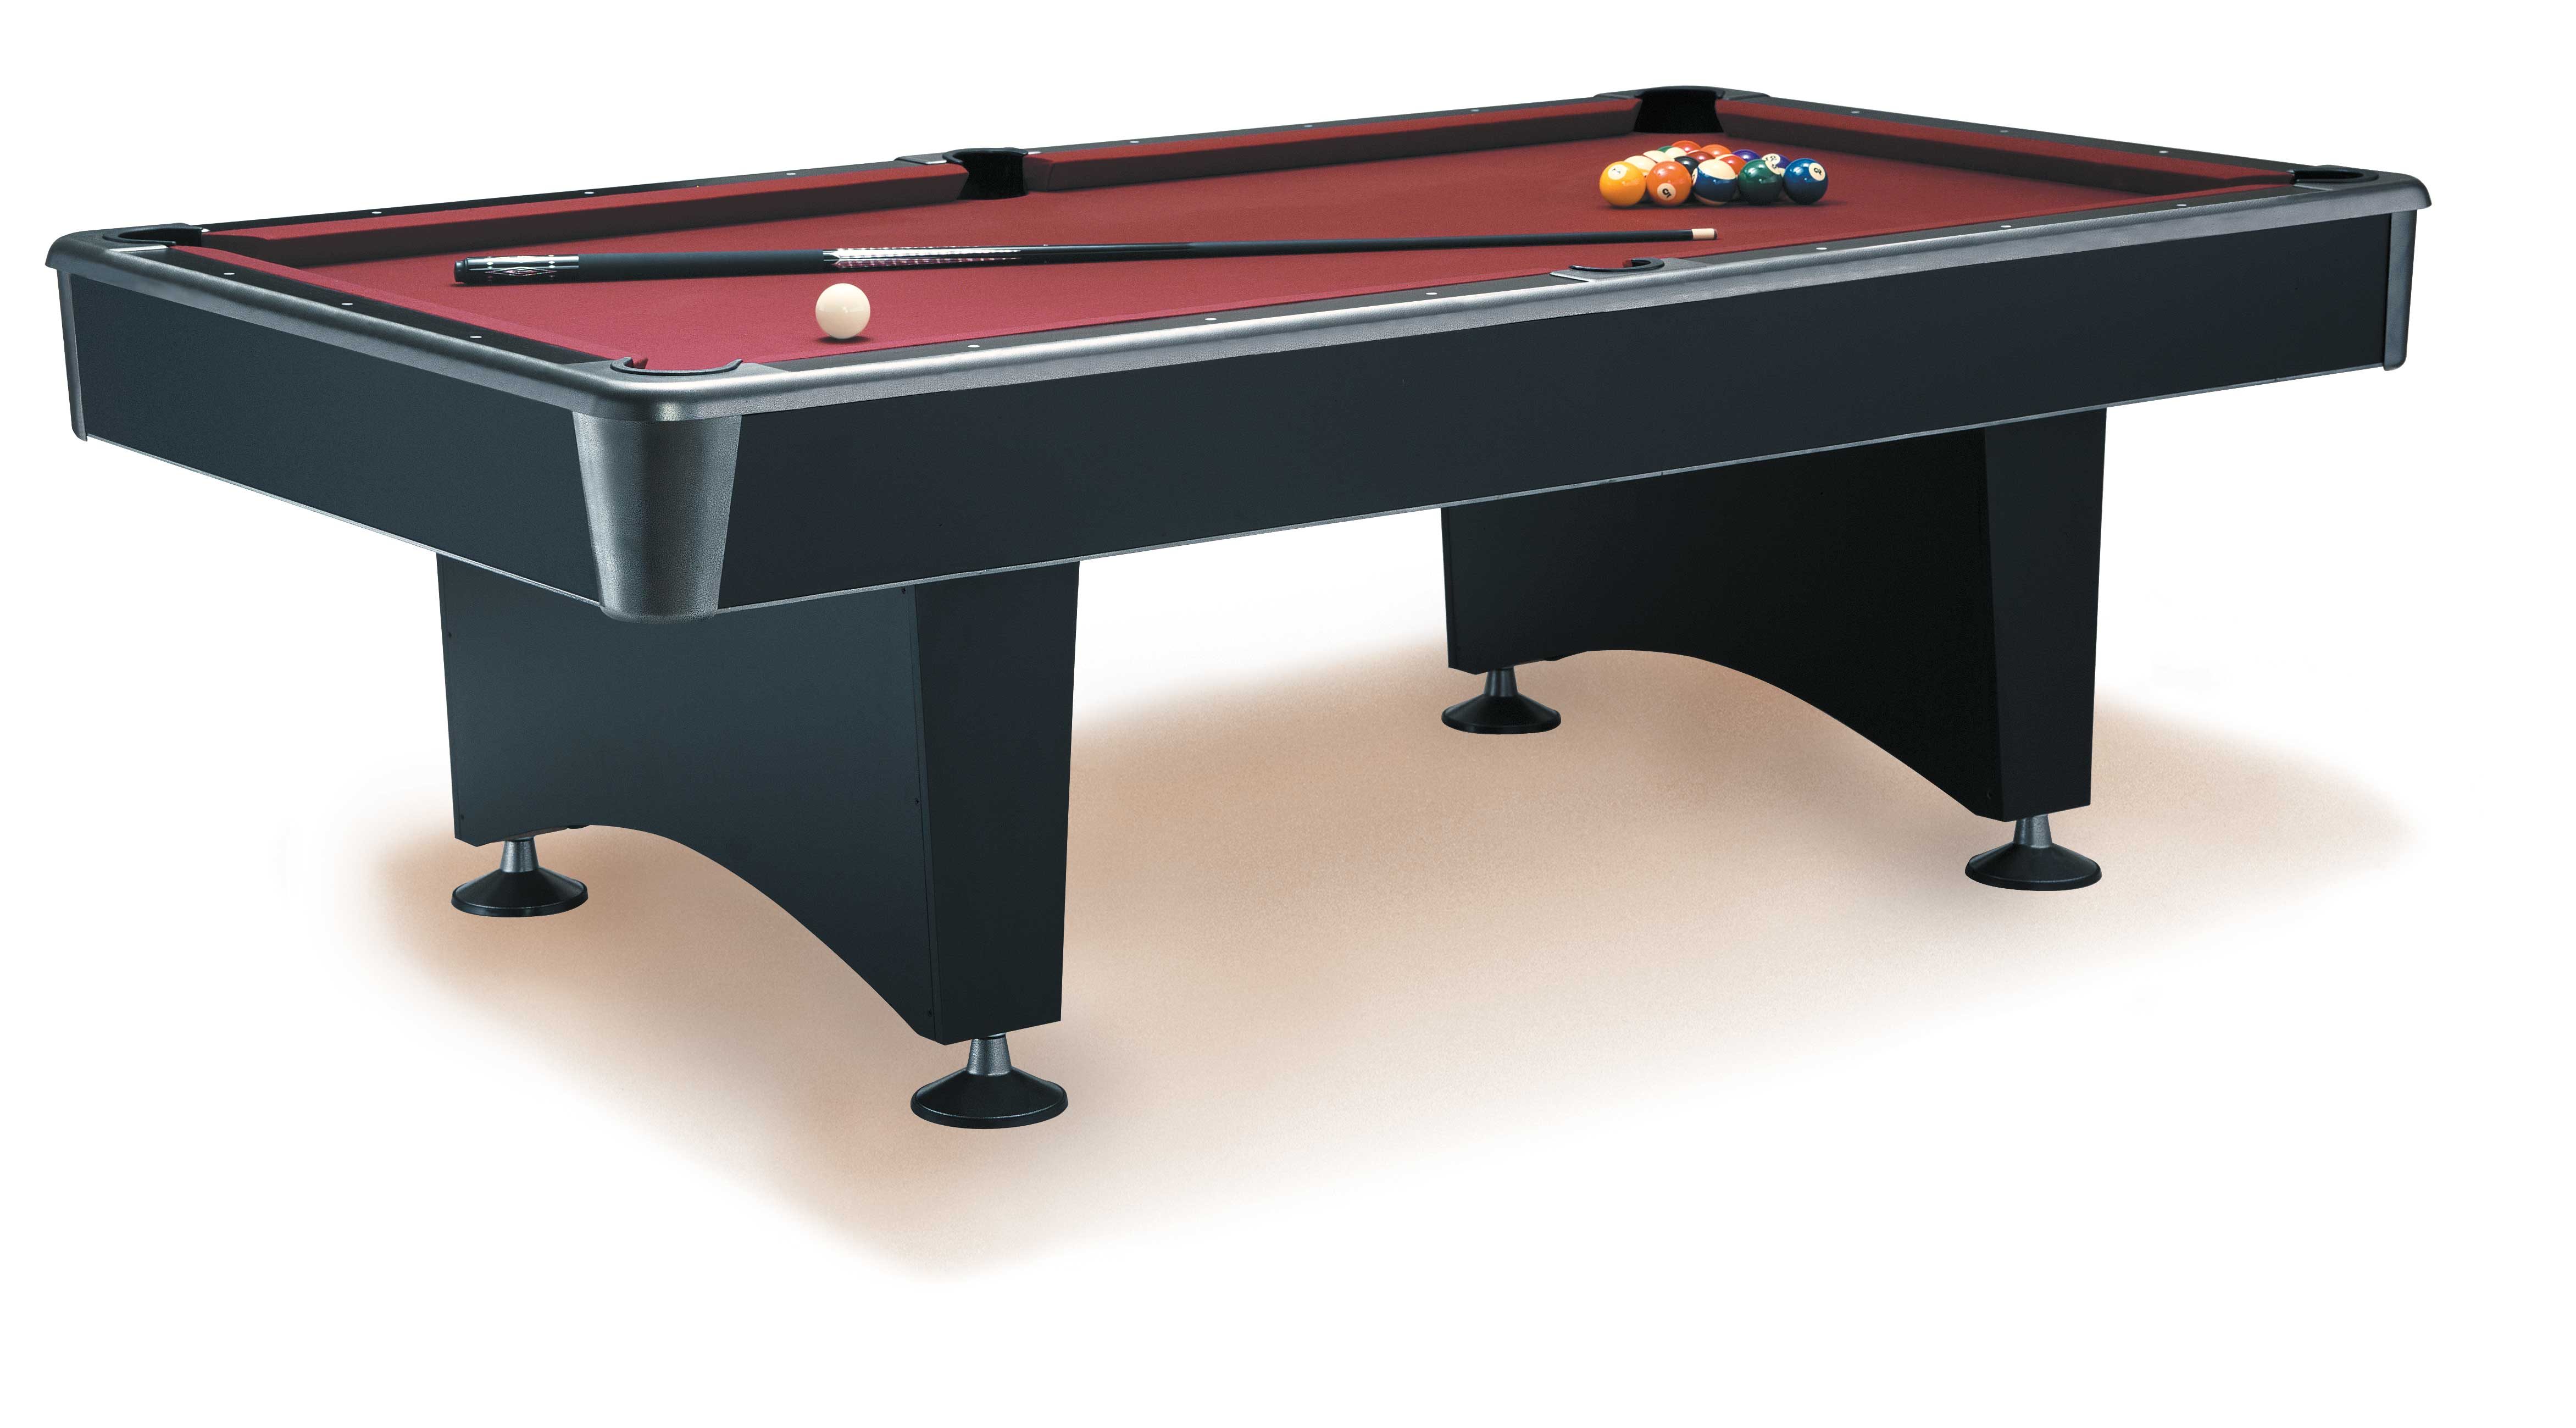 Olhausen Pool Tables For Sale New Jersey Billiards Pool Table NJ - Olhausen reno pool table